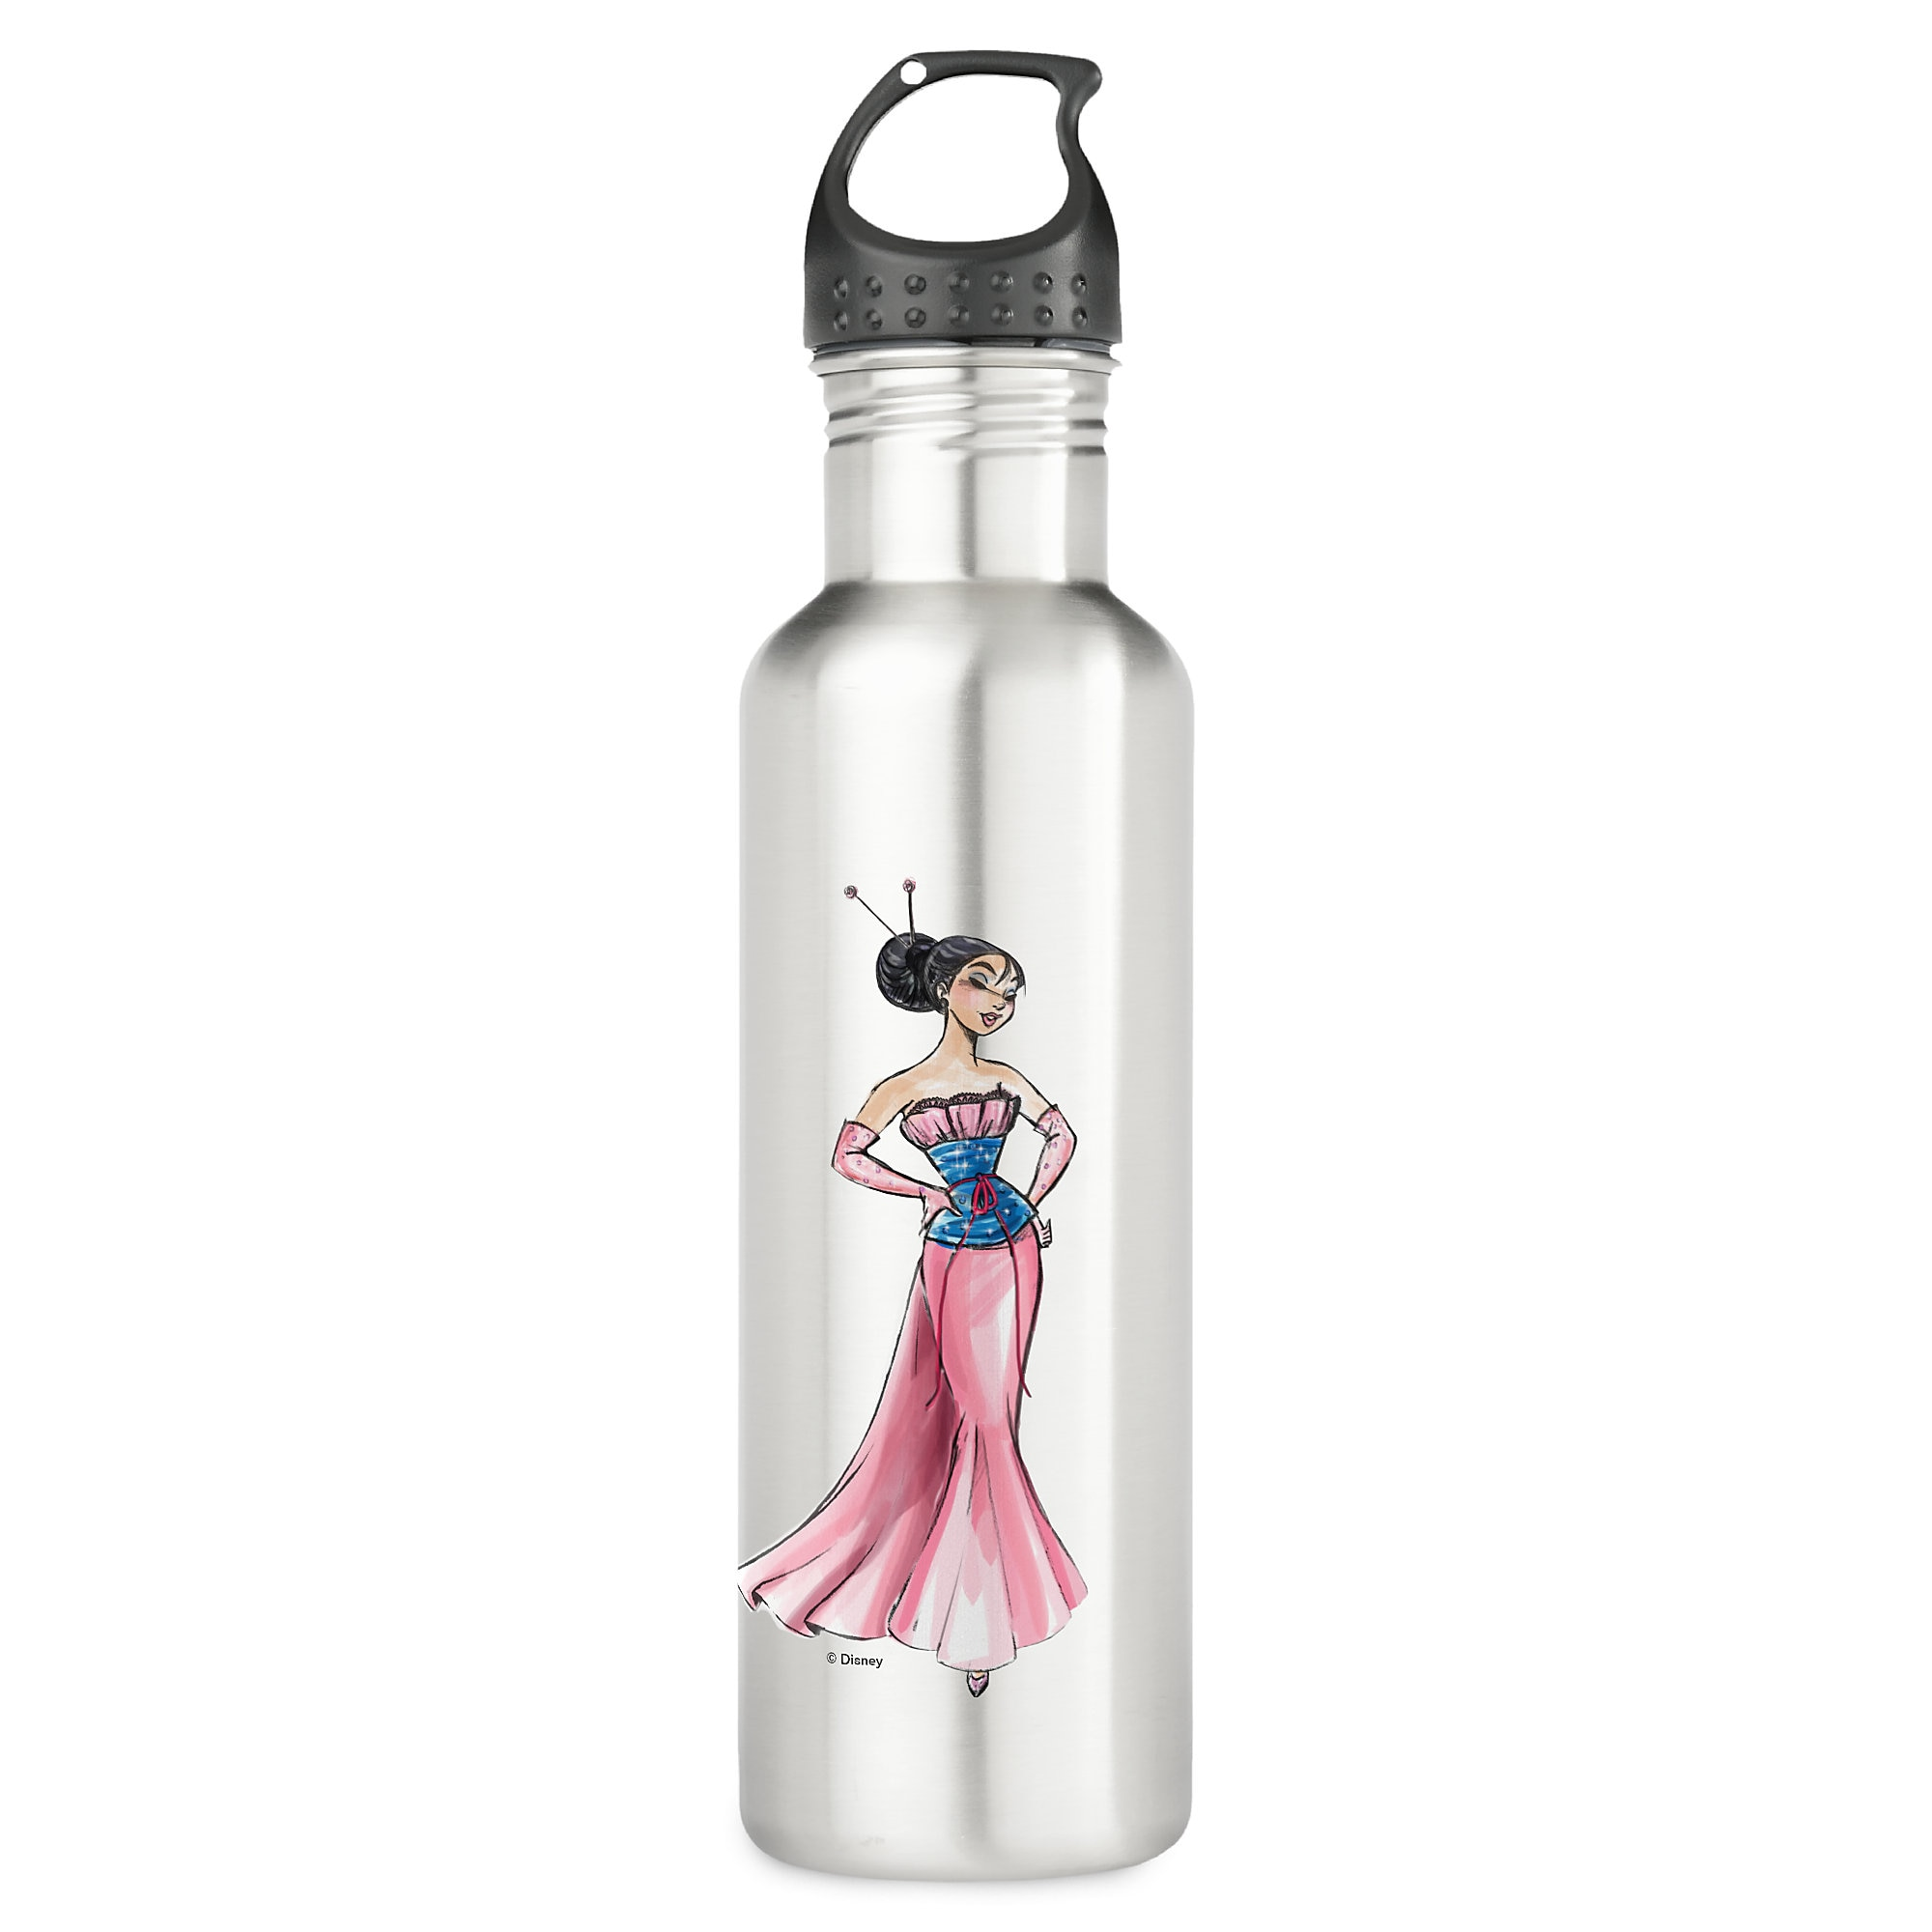 Mulan Water Bottle - Art of Princess Designer Collection